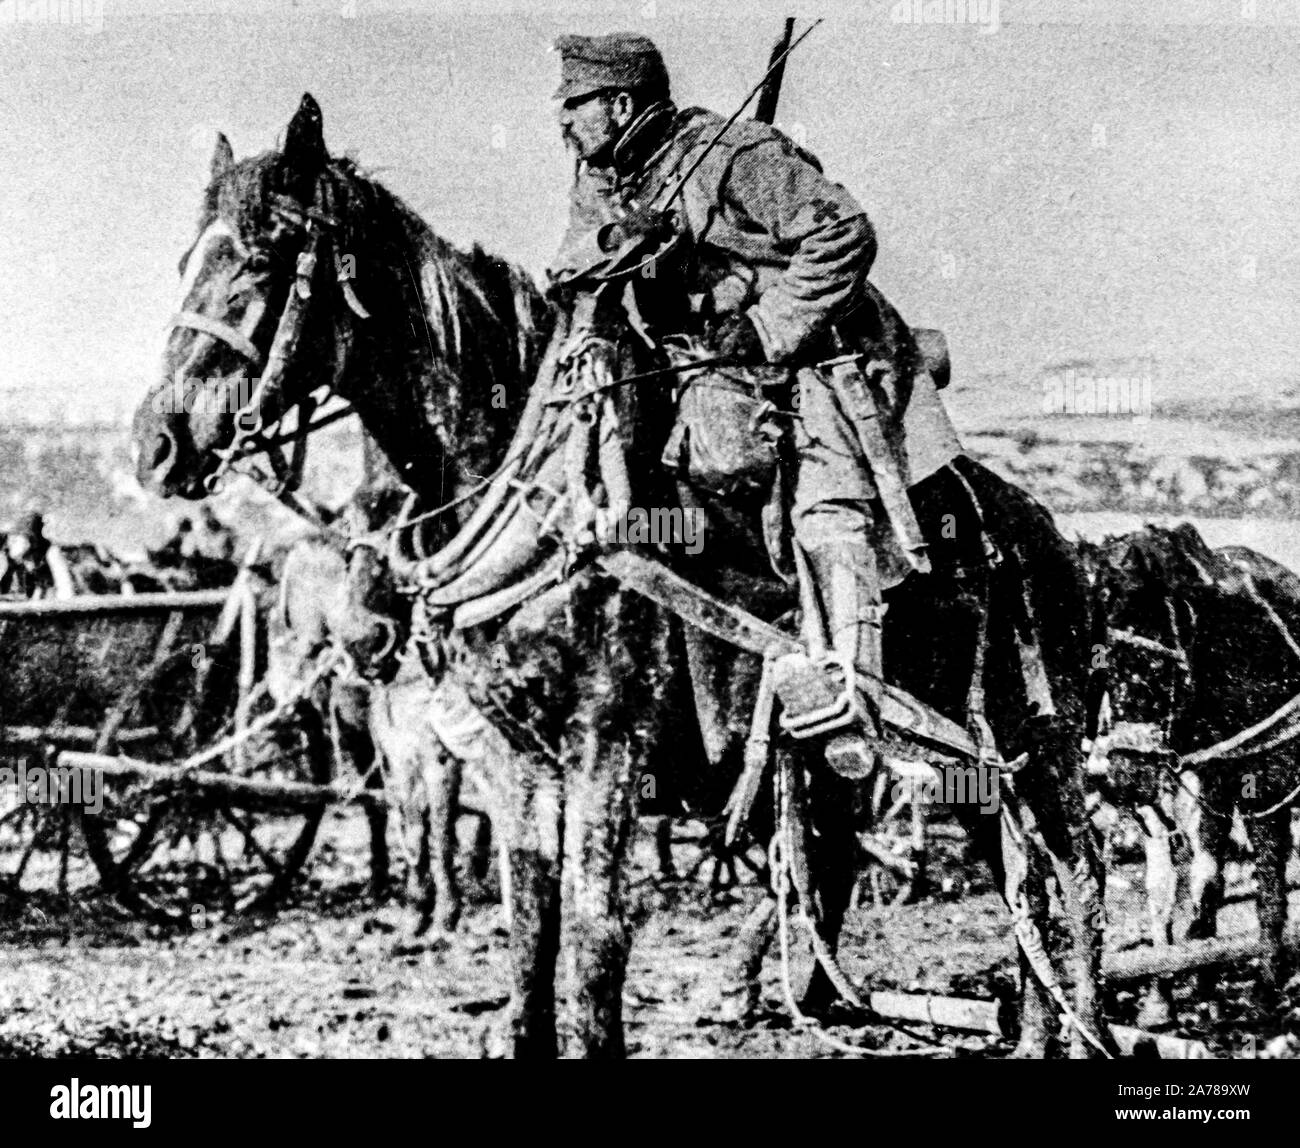 Austro-Hungarian soldier on horseback, World War I Stock Photo